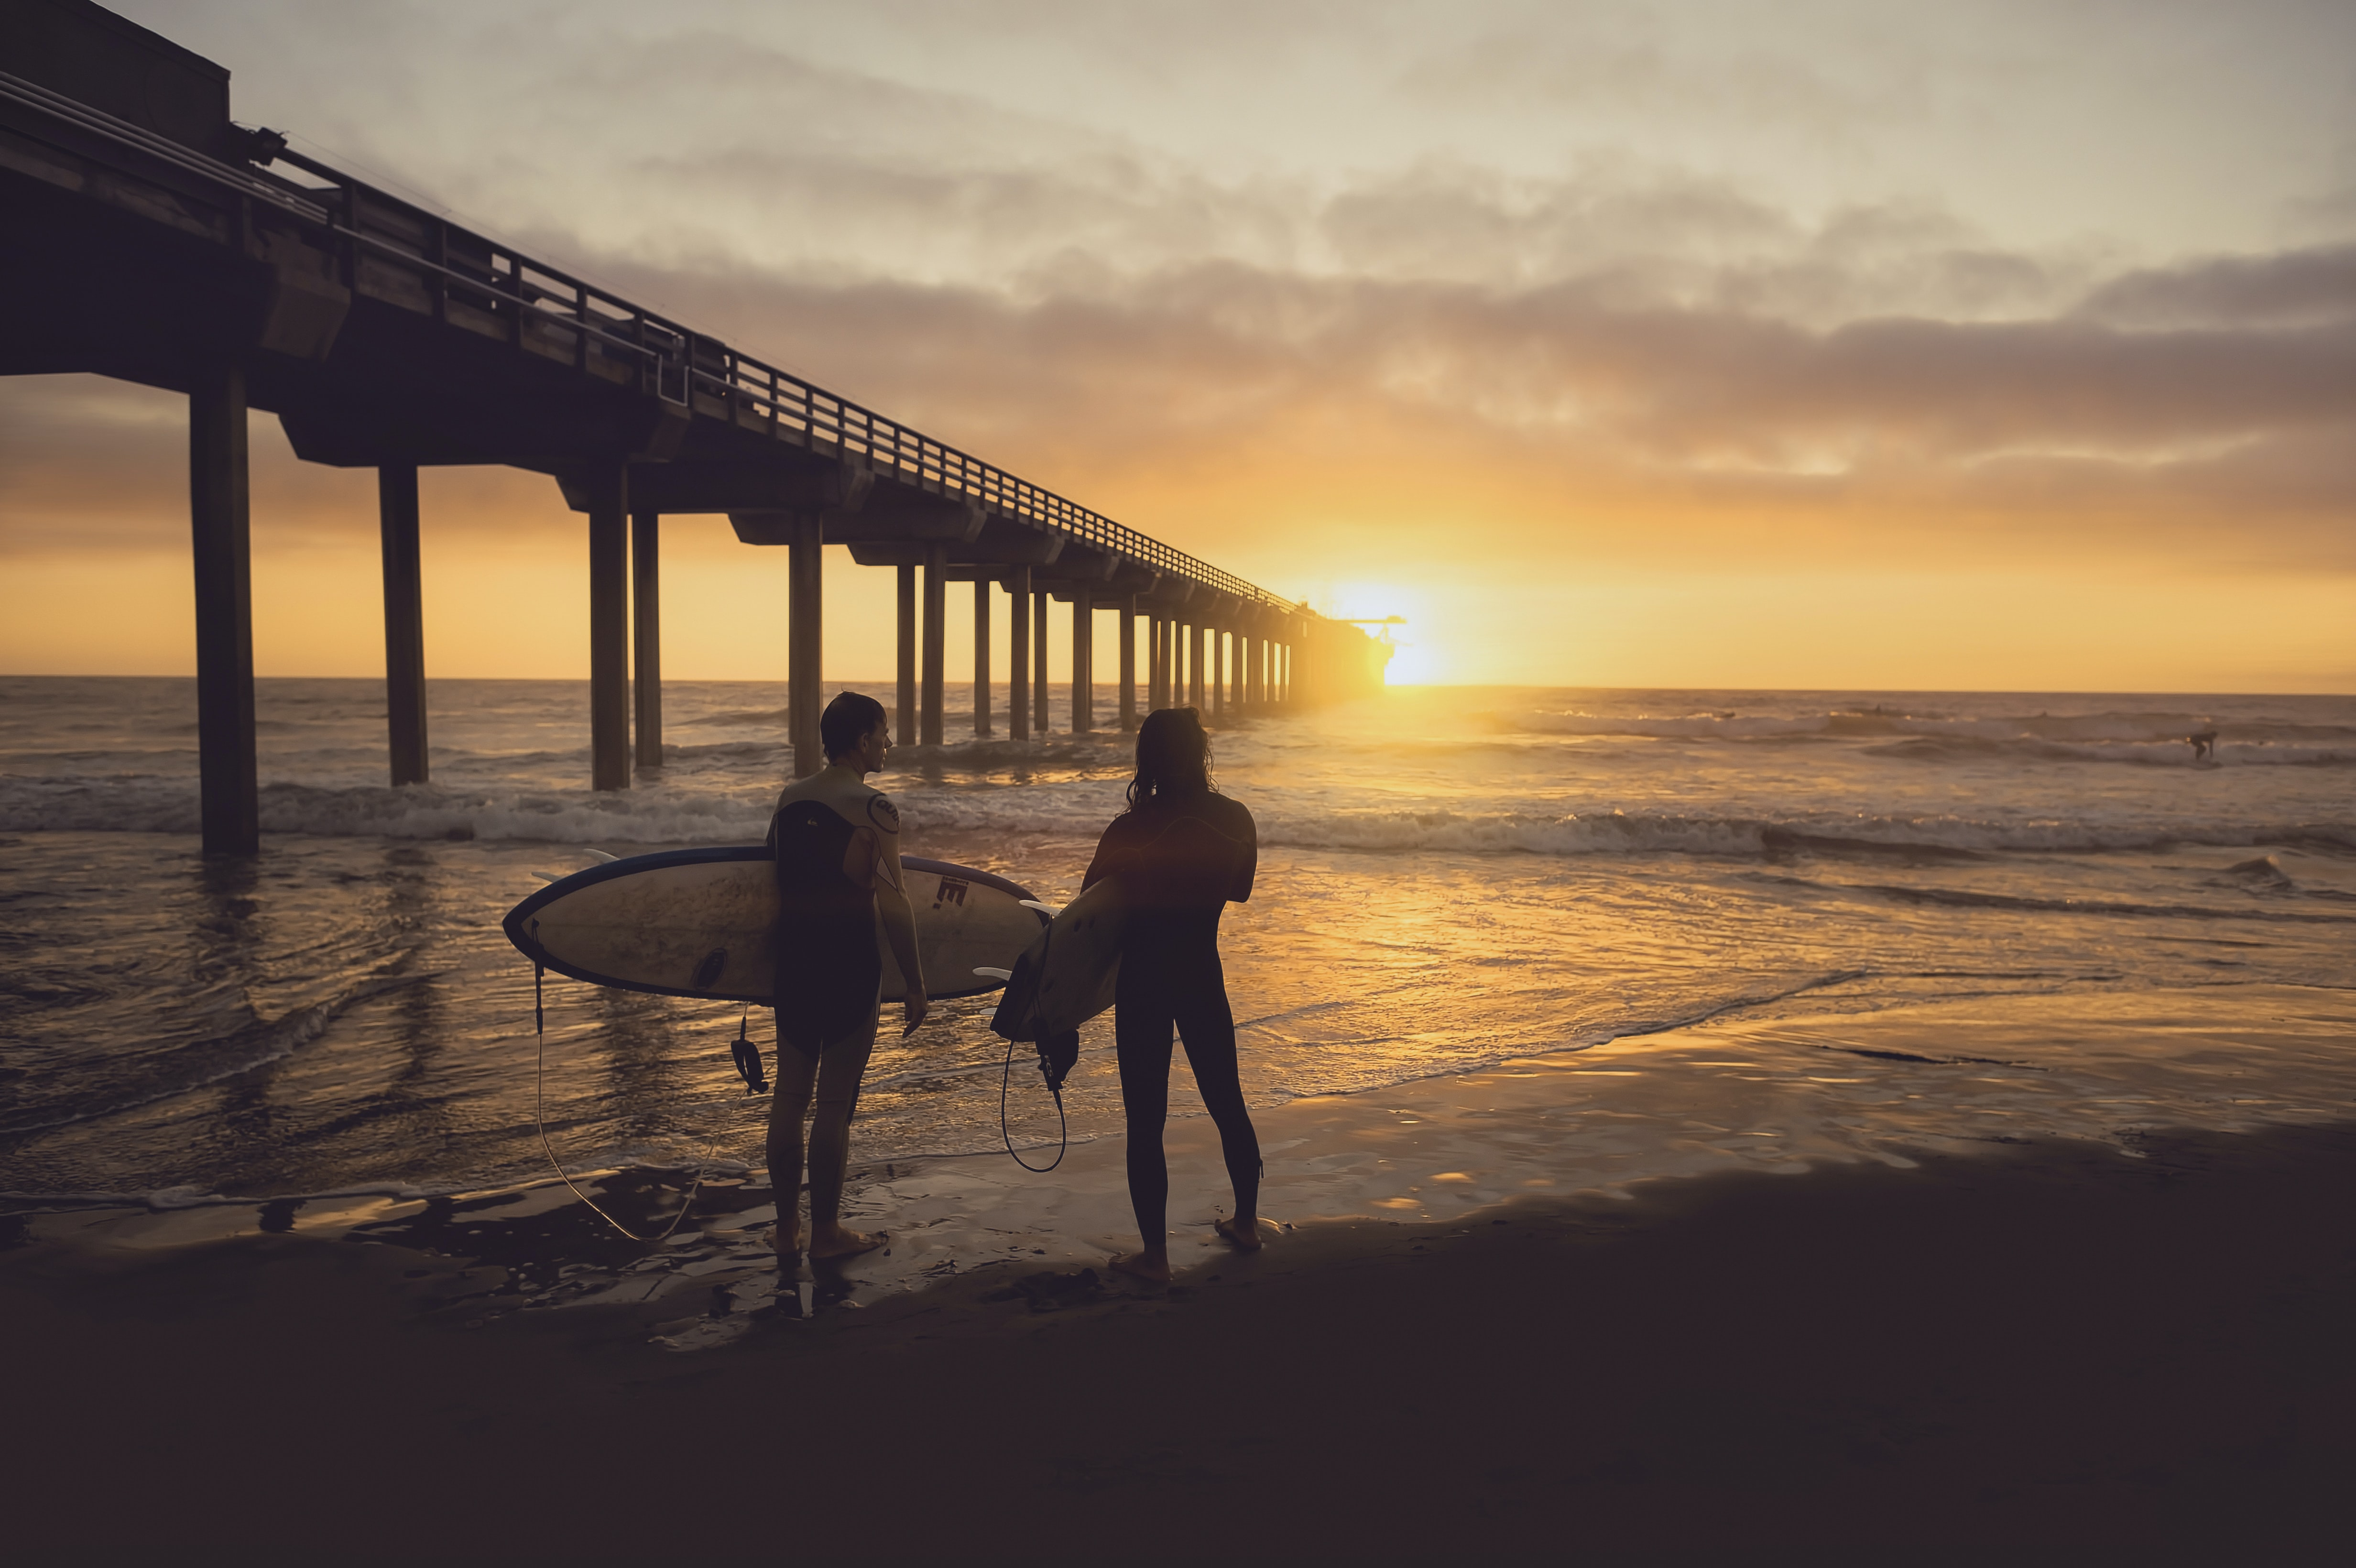 Two surfers standing on the sand beach by the wooden pier pillars at sunset